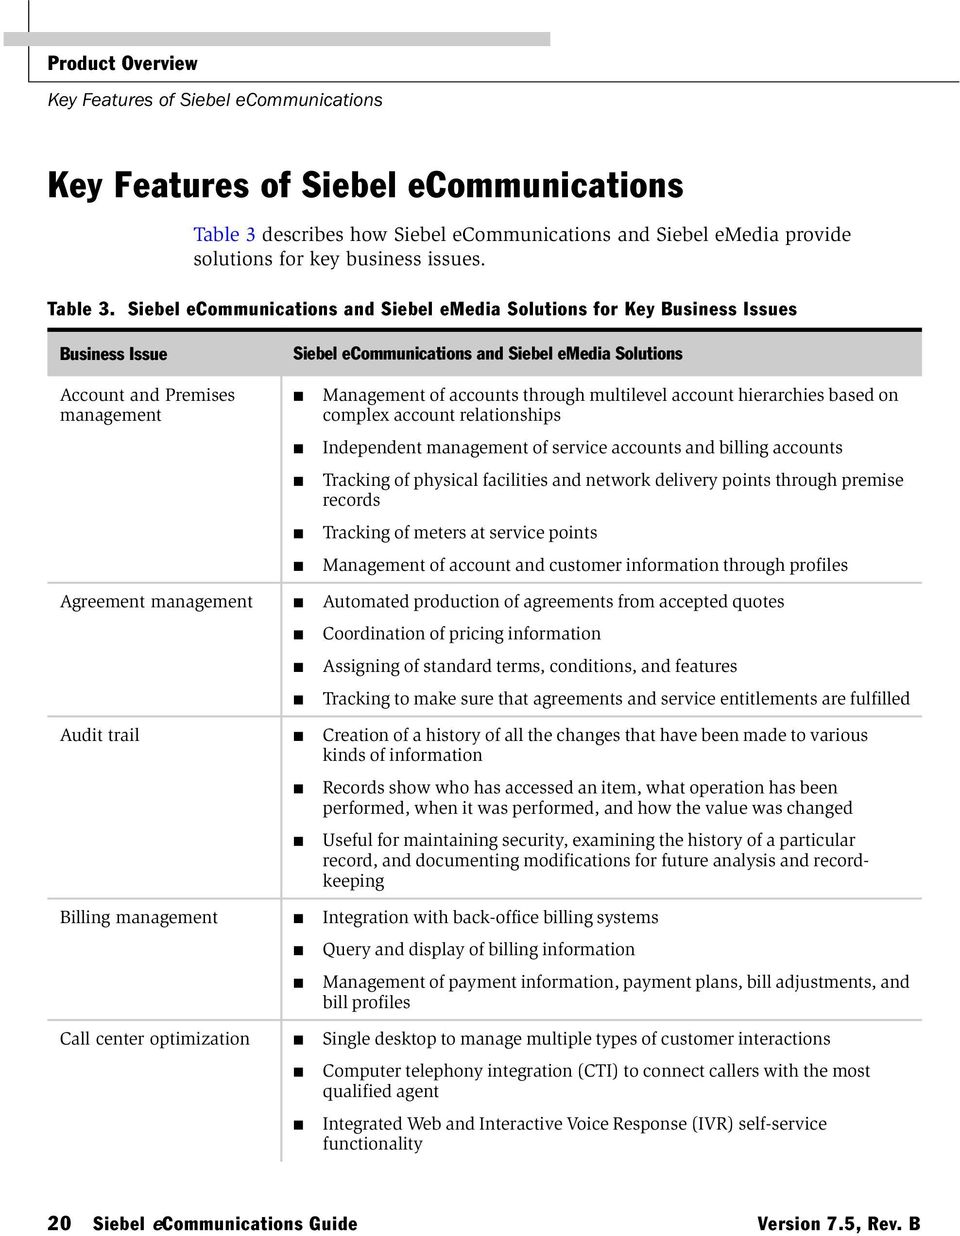 Siebel ecommunications and Siebel emedia Solutions for Key Business Issues Business Issue Siebel ecommunications and Siebel emedia Solutions Account and Premises management Management of accounts